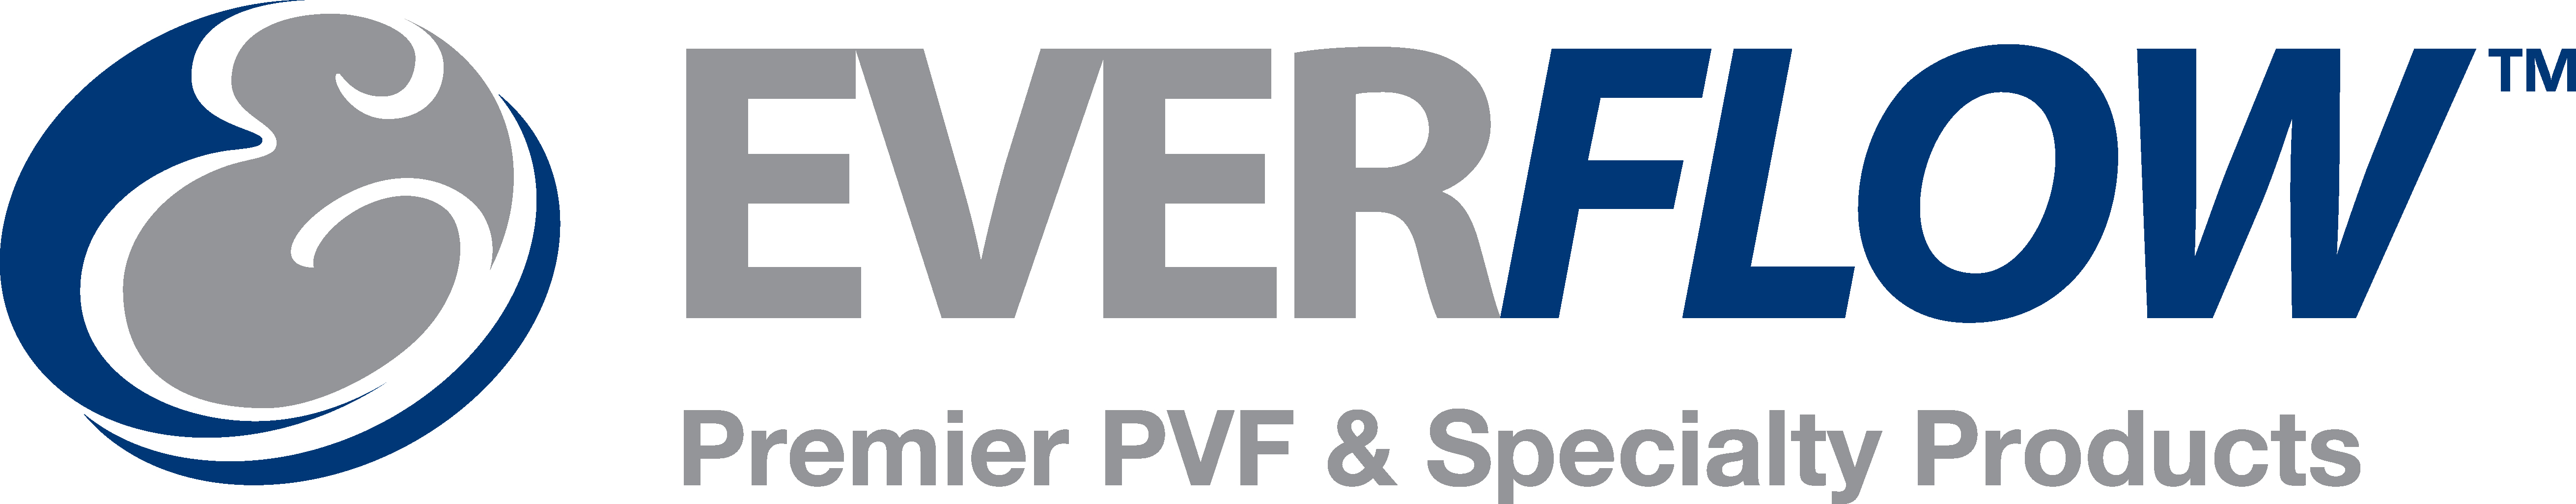 Everflow Products